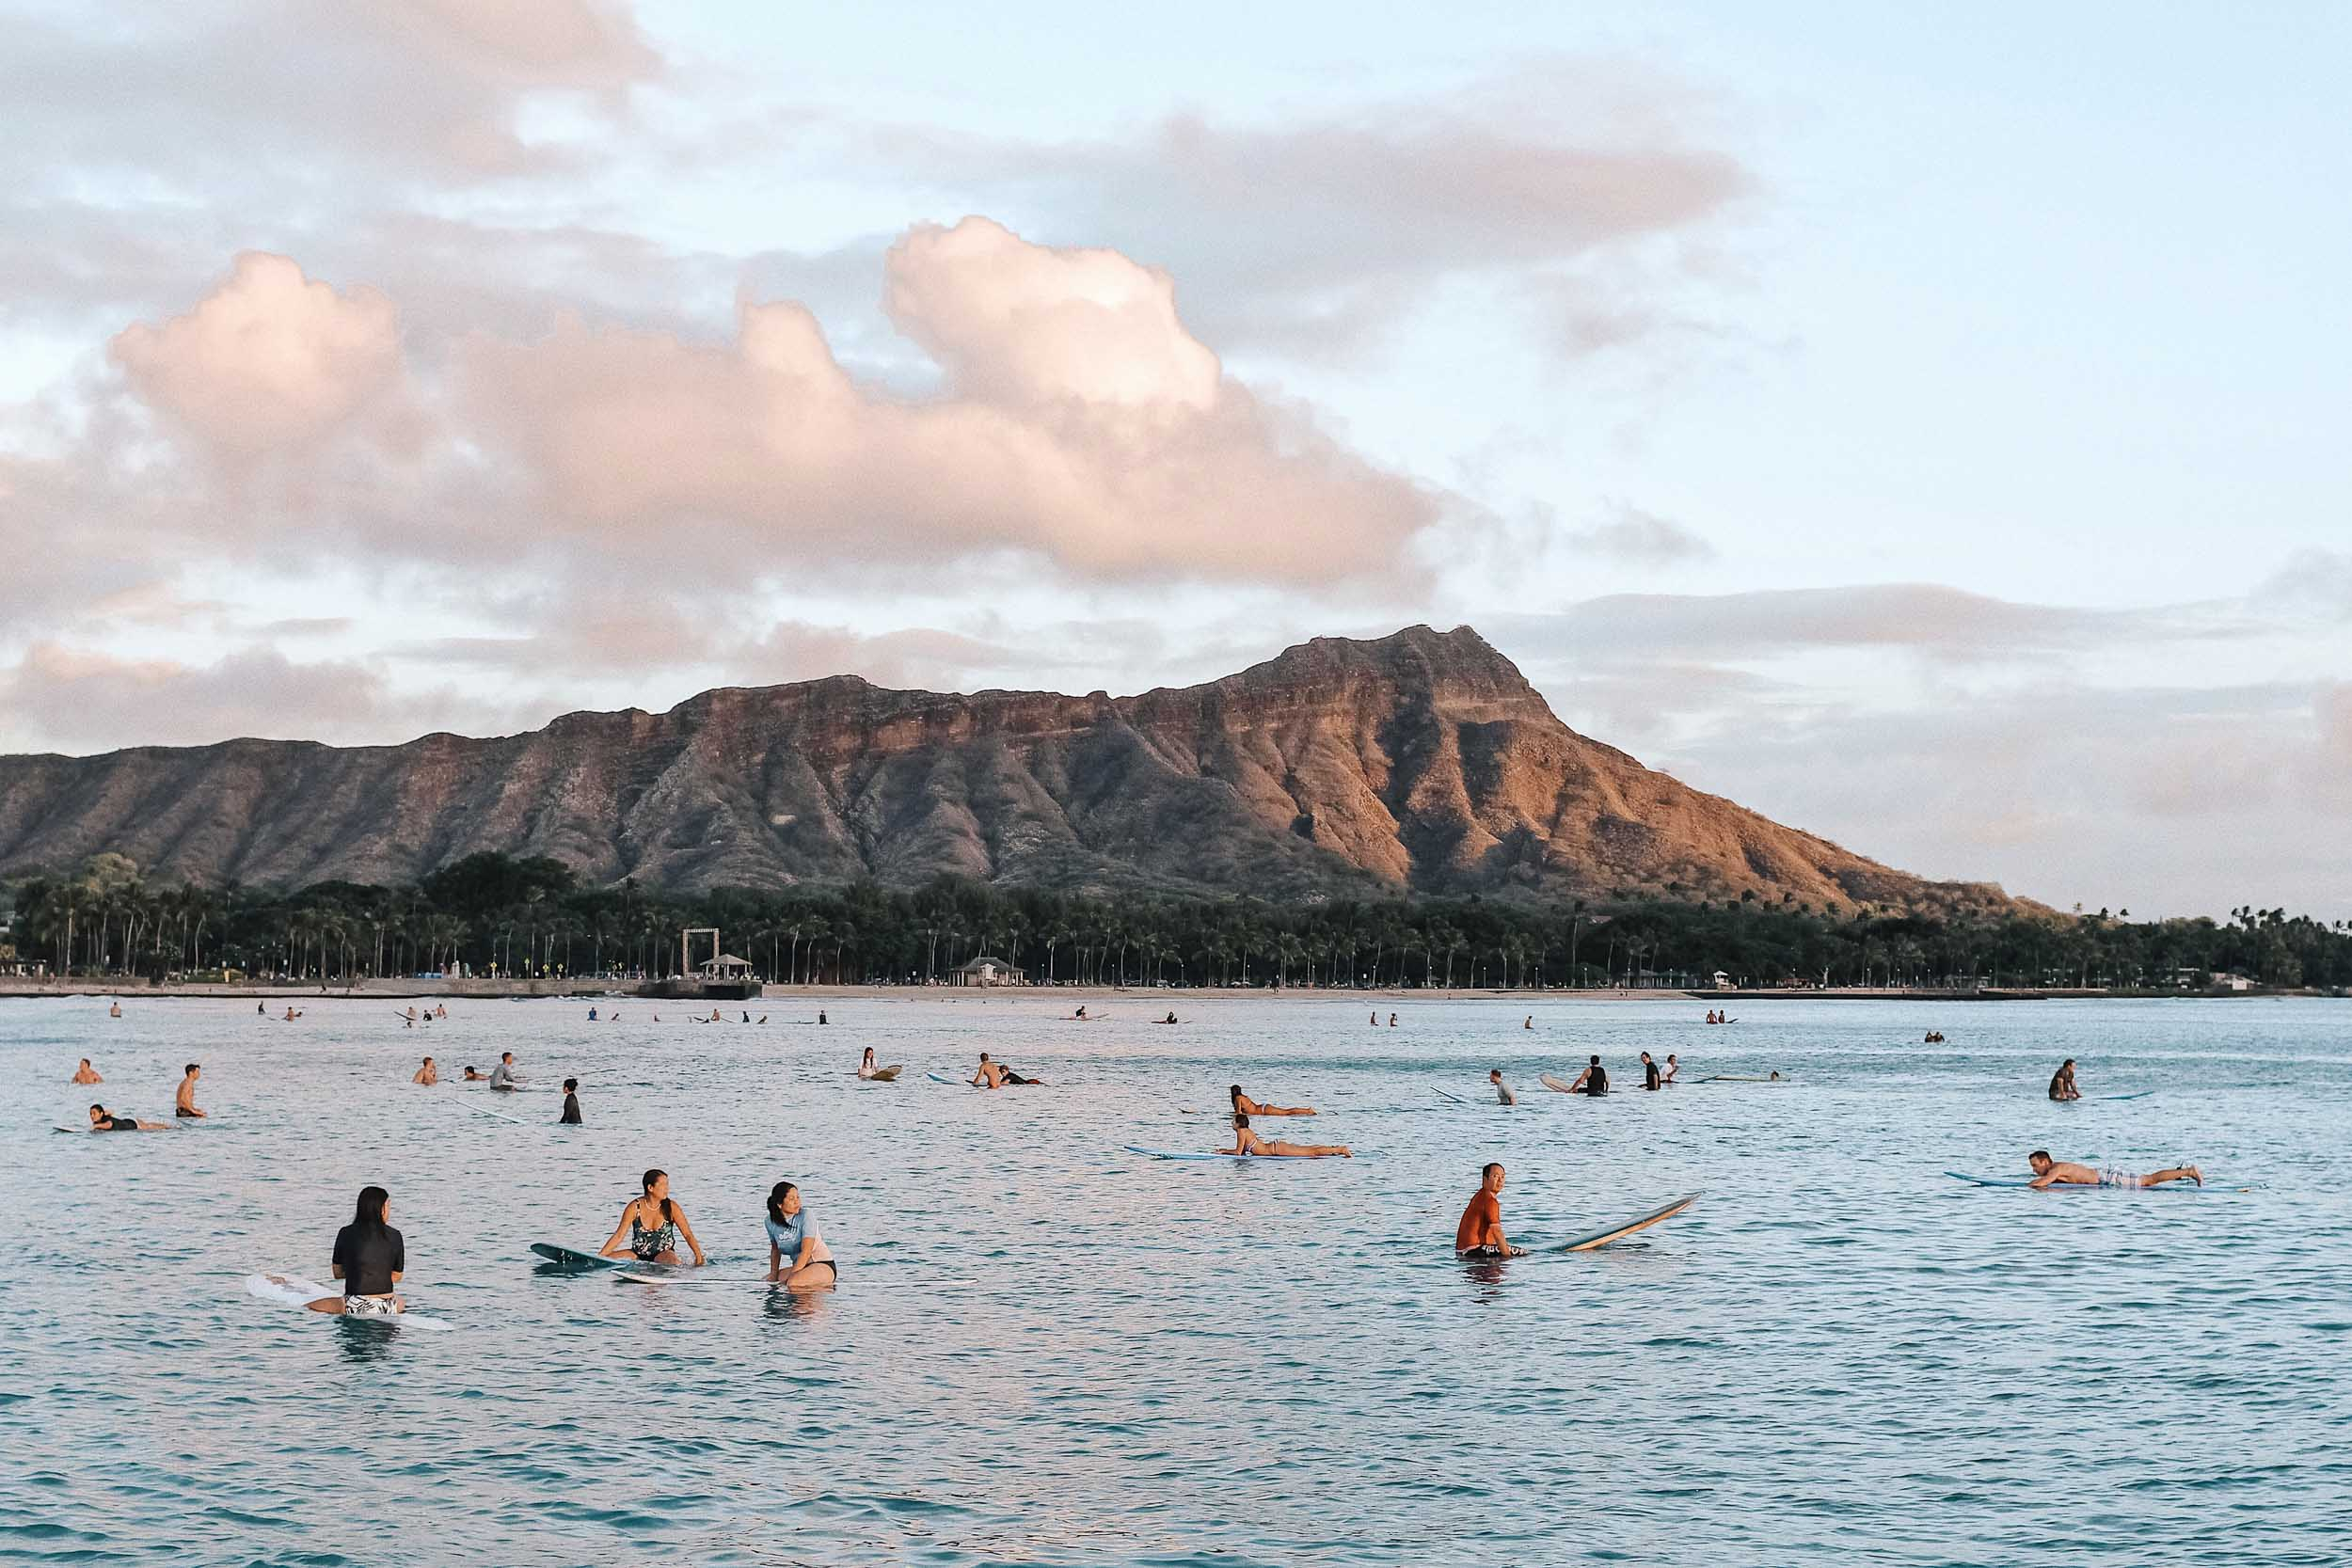 Pictures of Diamond Head are best from Waikiki